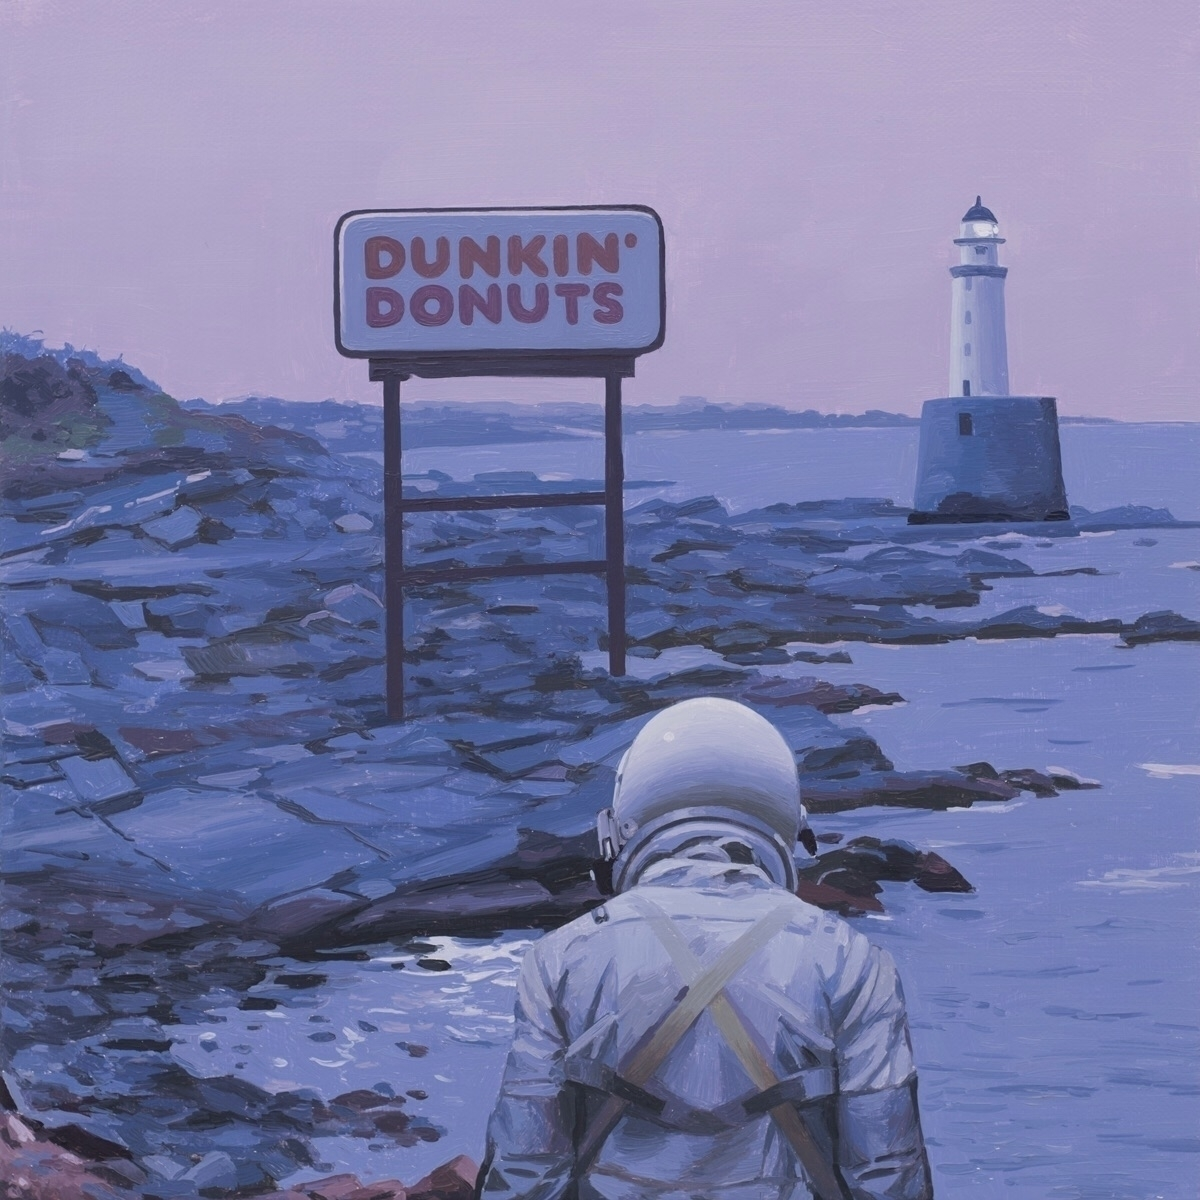 remember July 4th forefathers f - scottlistfield | ello